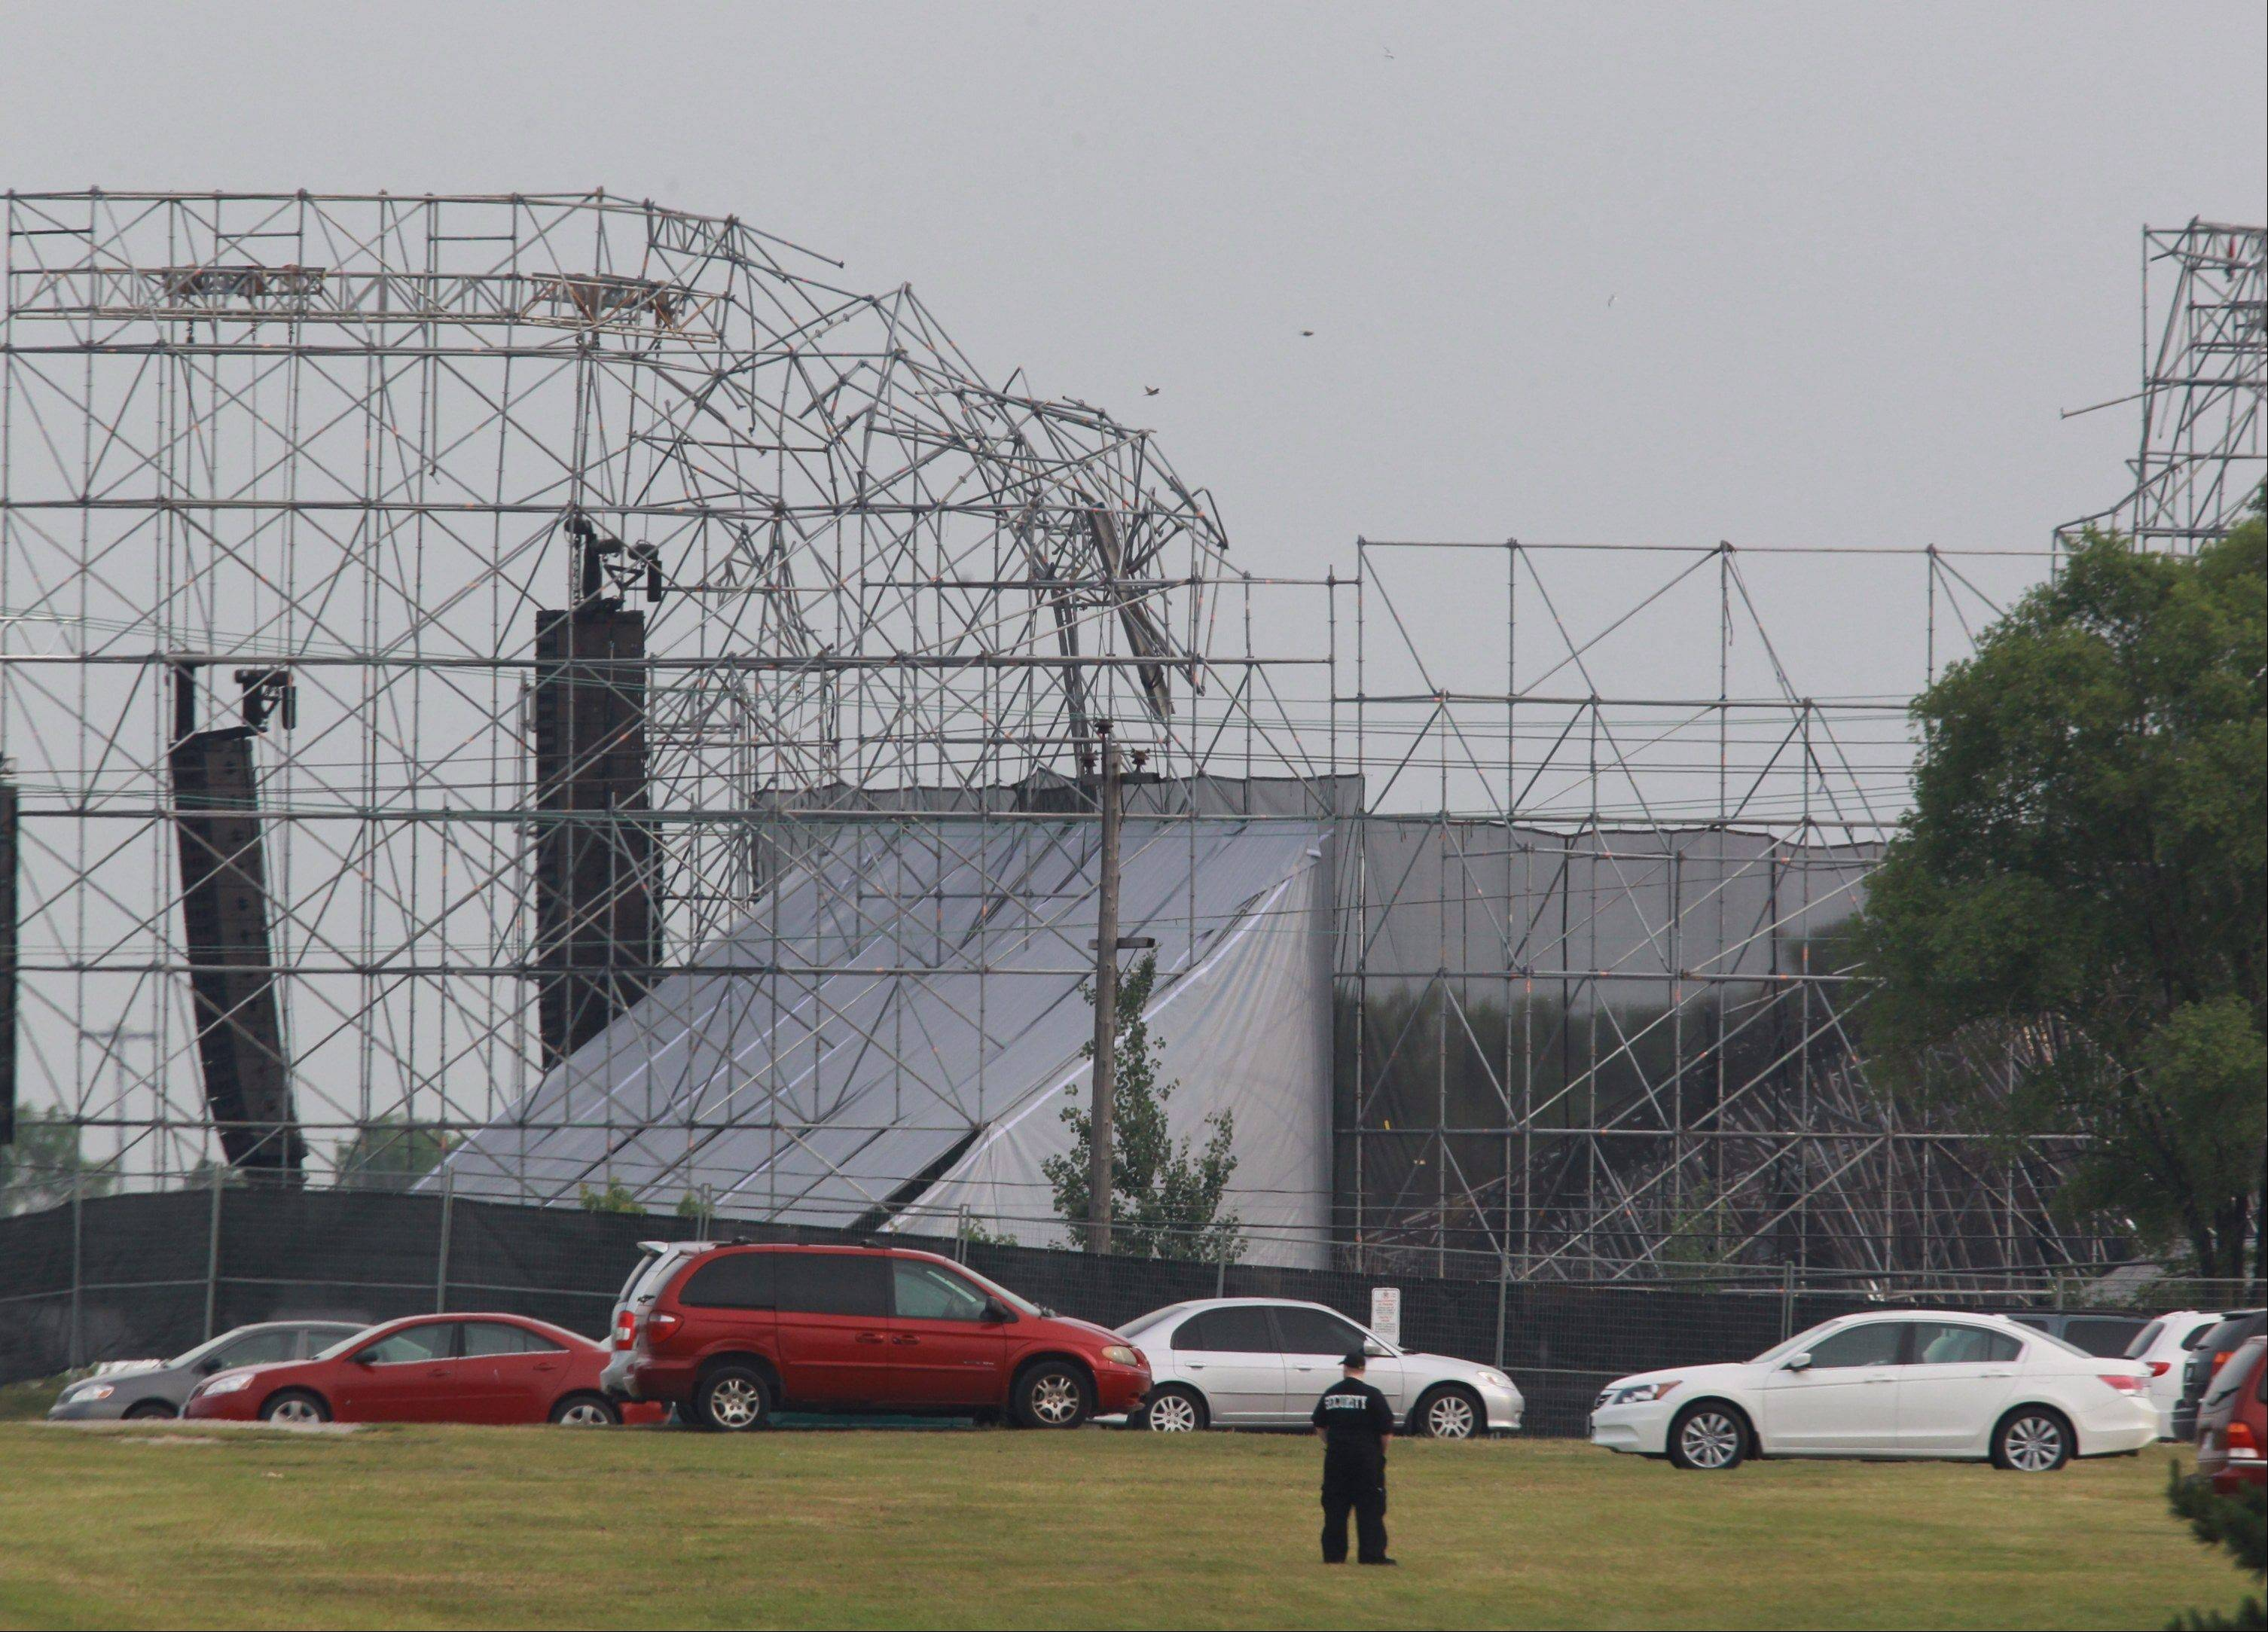 A security guard surveys the scene near a collapsed concert stage at Downsview Park in Toronto, Saturday, June 16, 2012. The top of a stage being set up for a concert by the alternative rock band Radiohead collapsed, killing one of the stage workers preparing for the event.